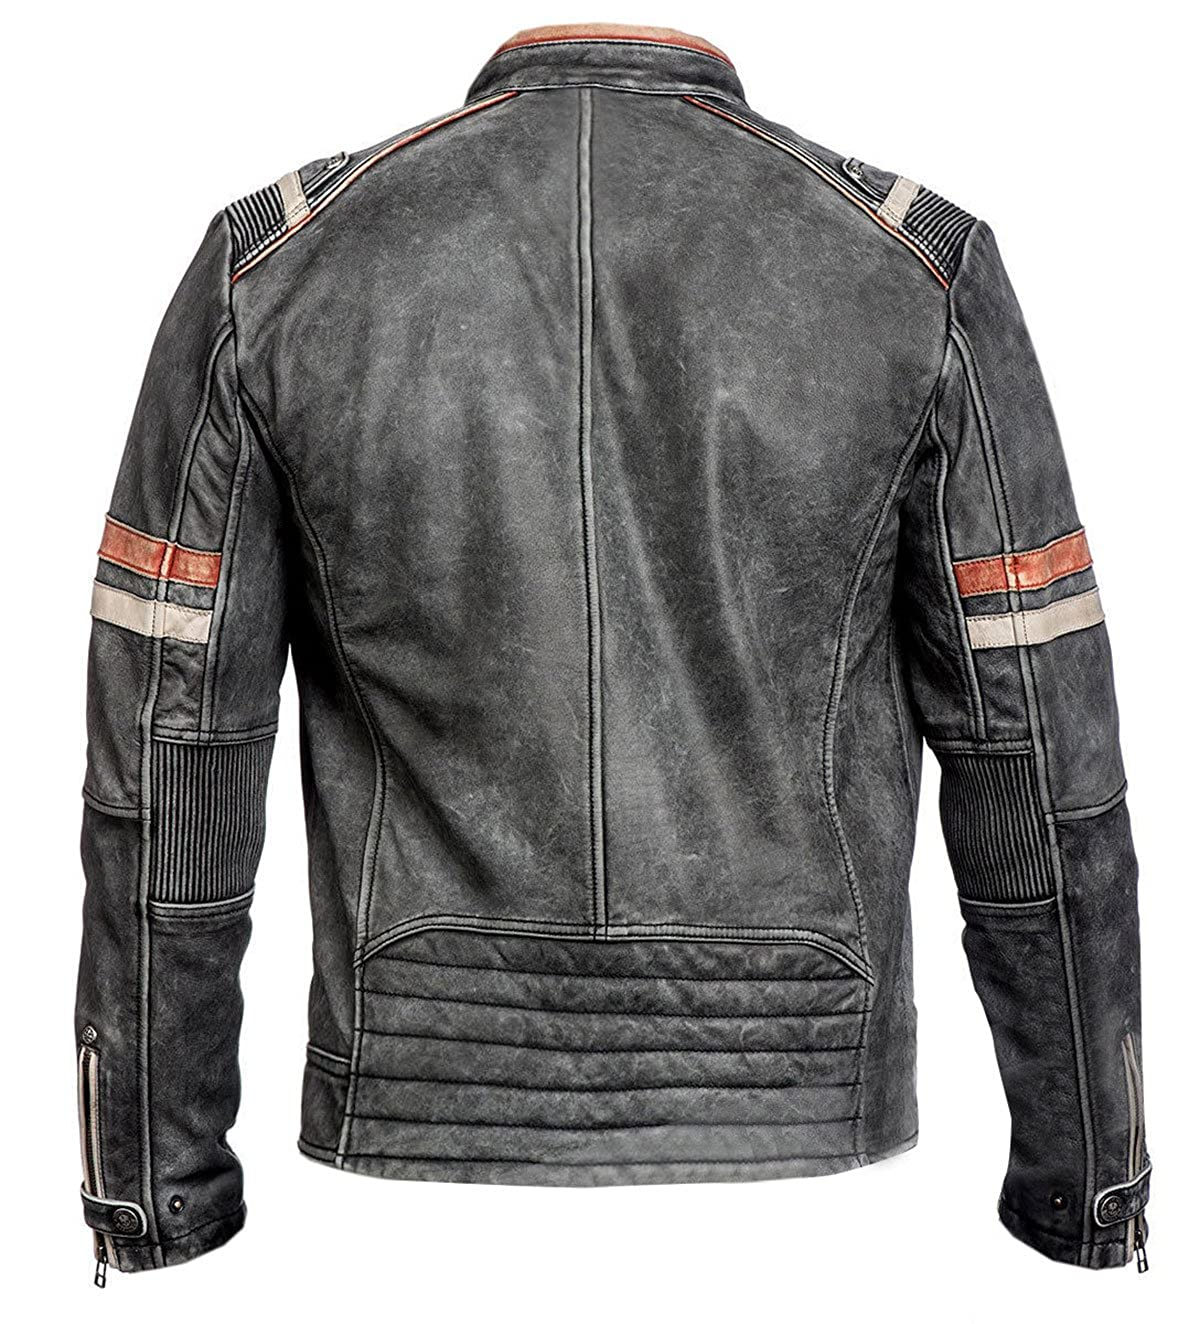 Spazeup Cafe Racer Jacket Vintage Motorcycle Retro Moto Distressed Leather Jacket